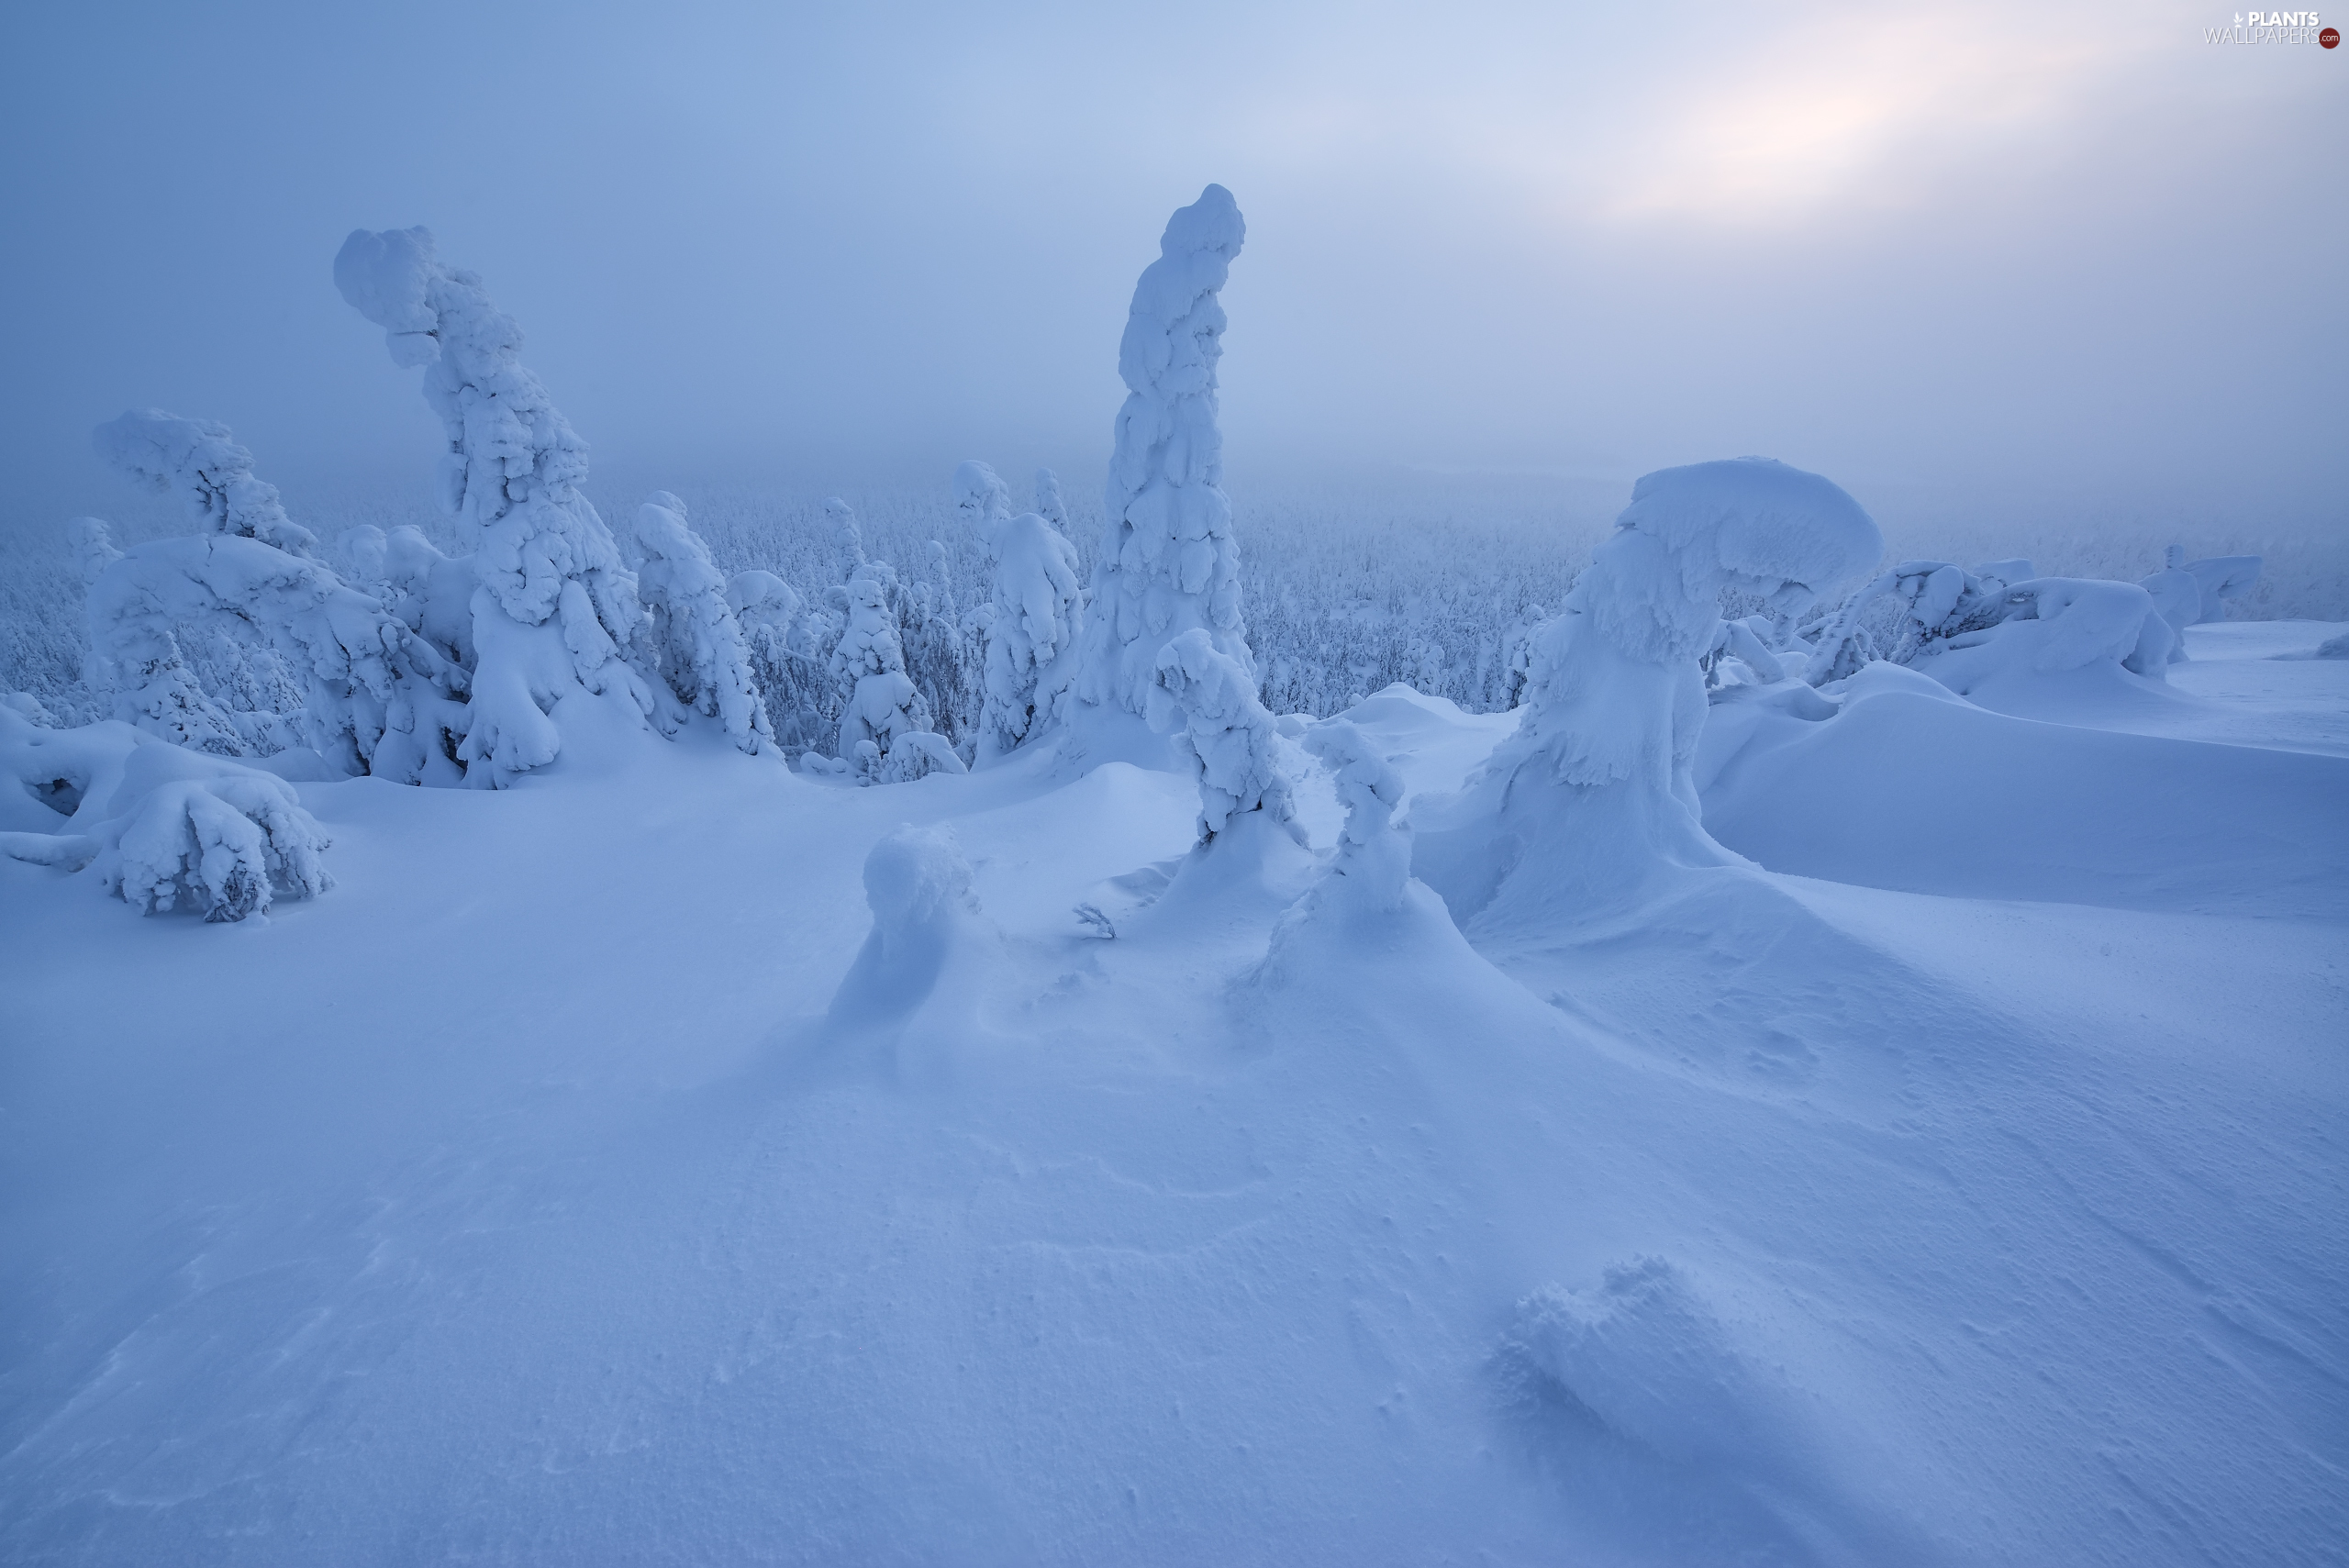 Snowy, Finland, viewes, Lapland, winter, trees, sun